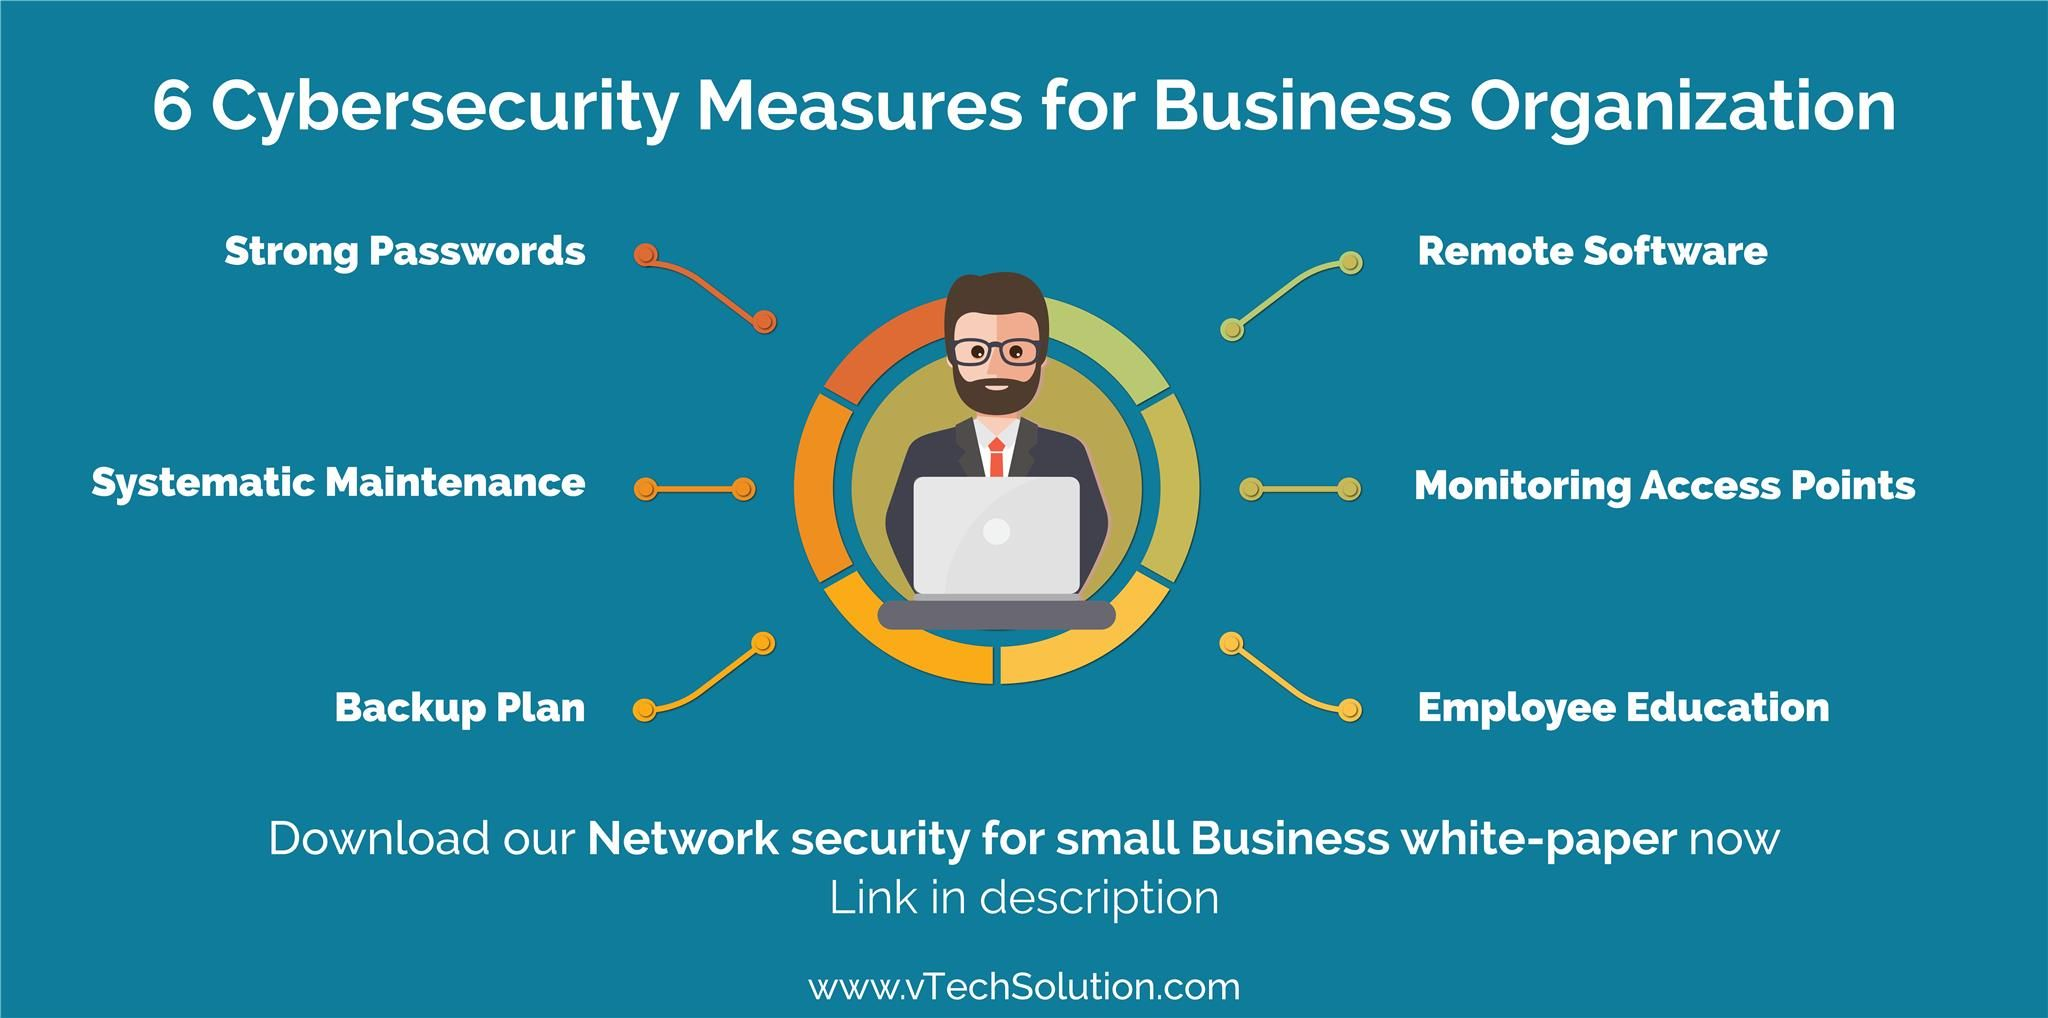 Here Are 6 Cybersecurity Measures For Business Organization Cybersecurityawarenessmonth C Cyber Security Awareness Month Managed It Services Cyber Security